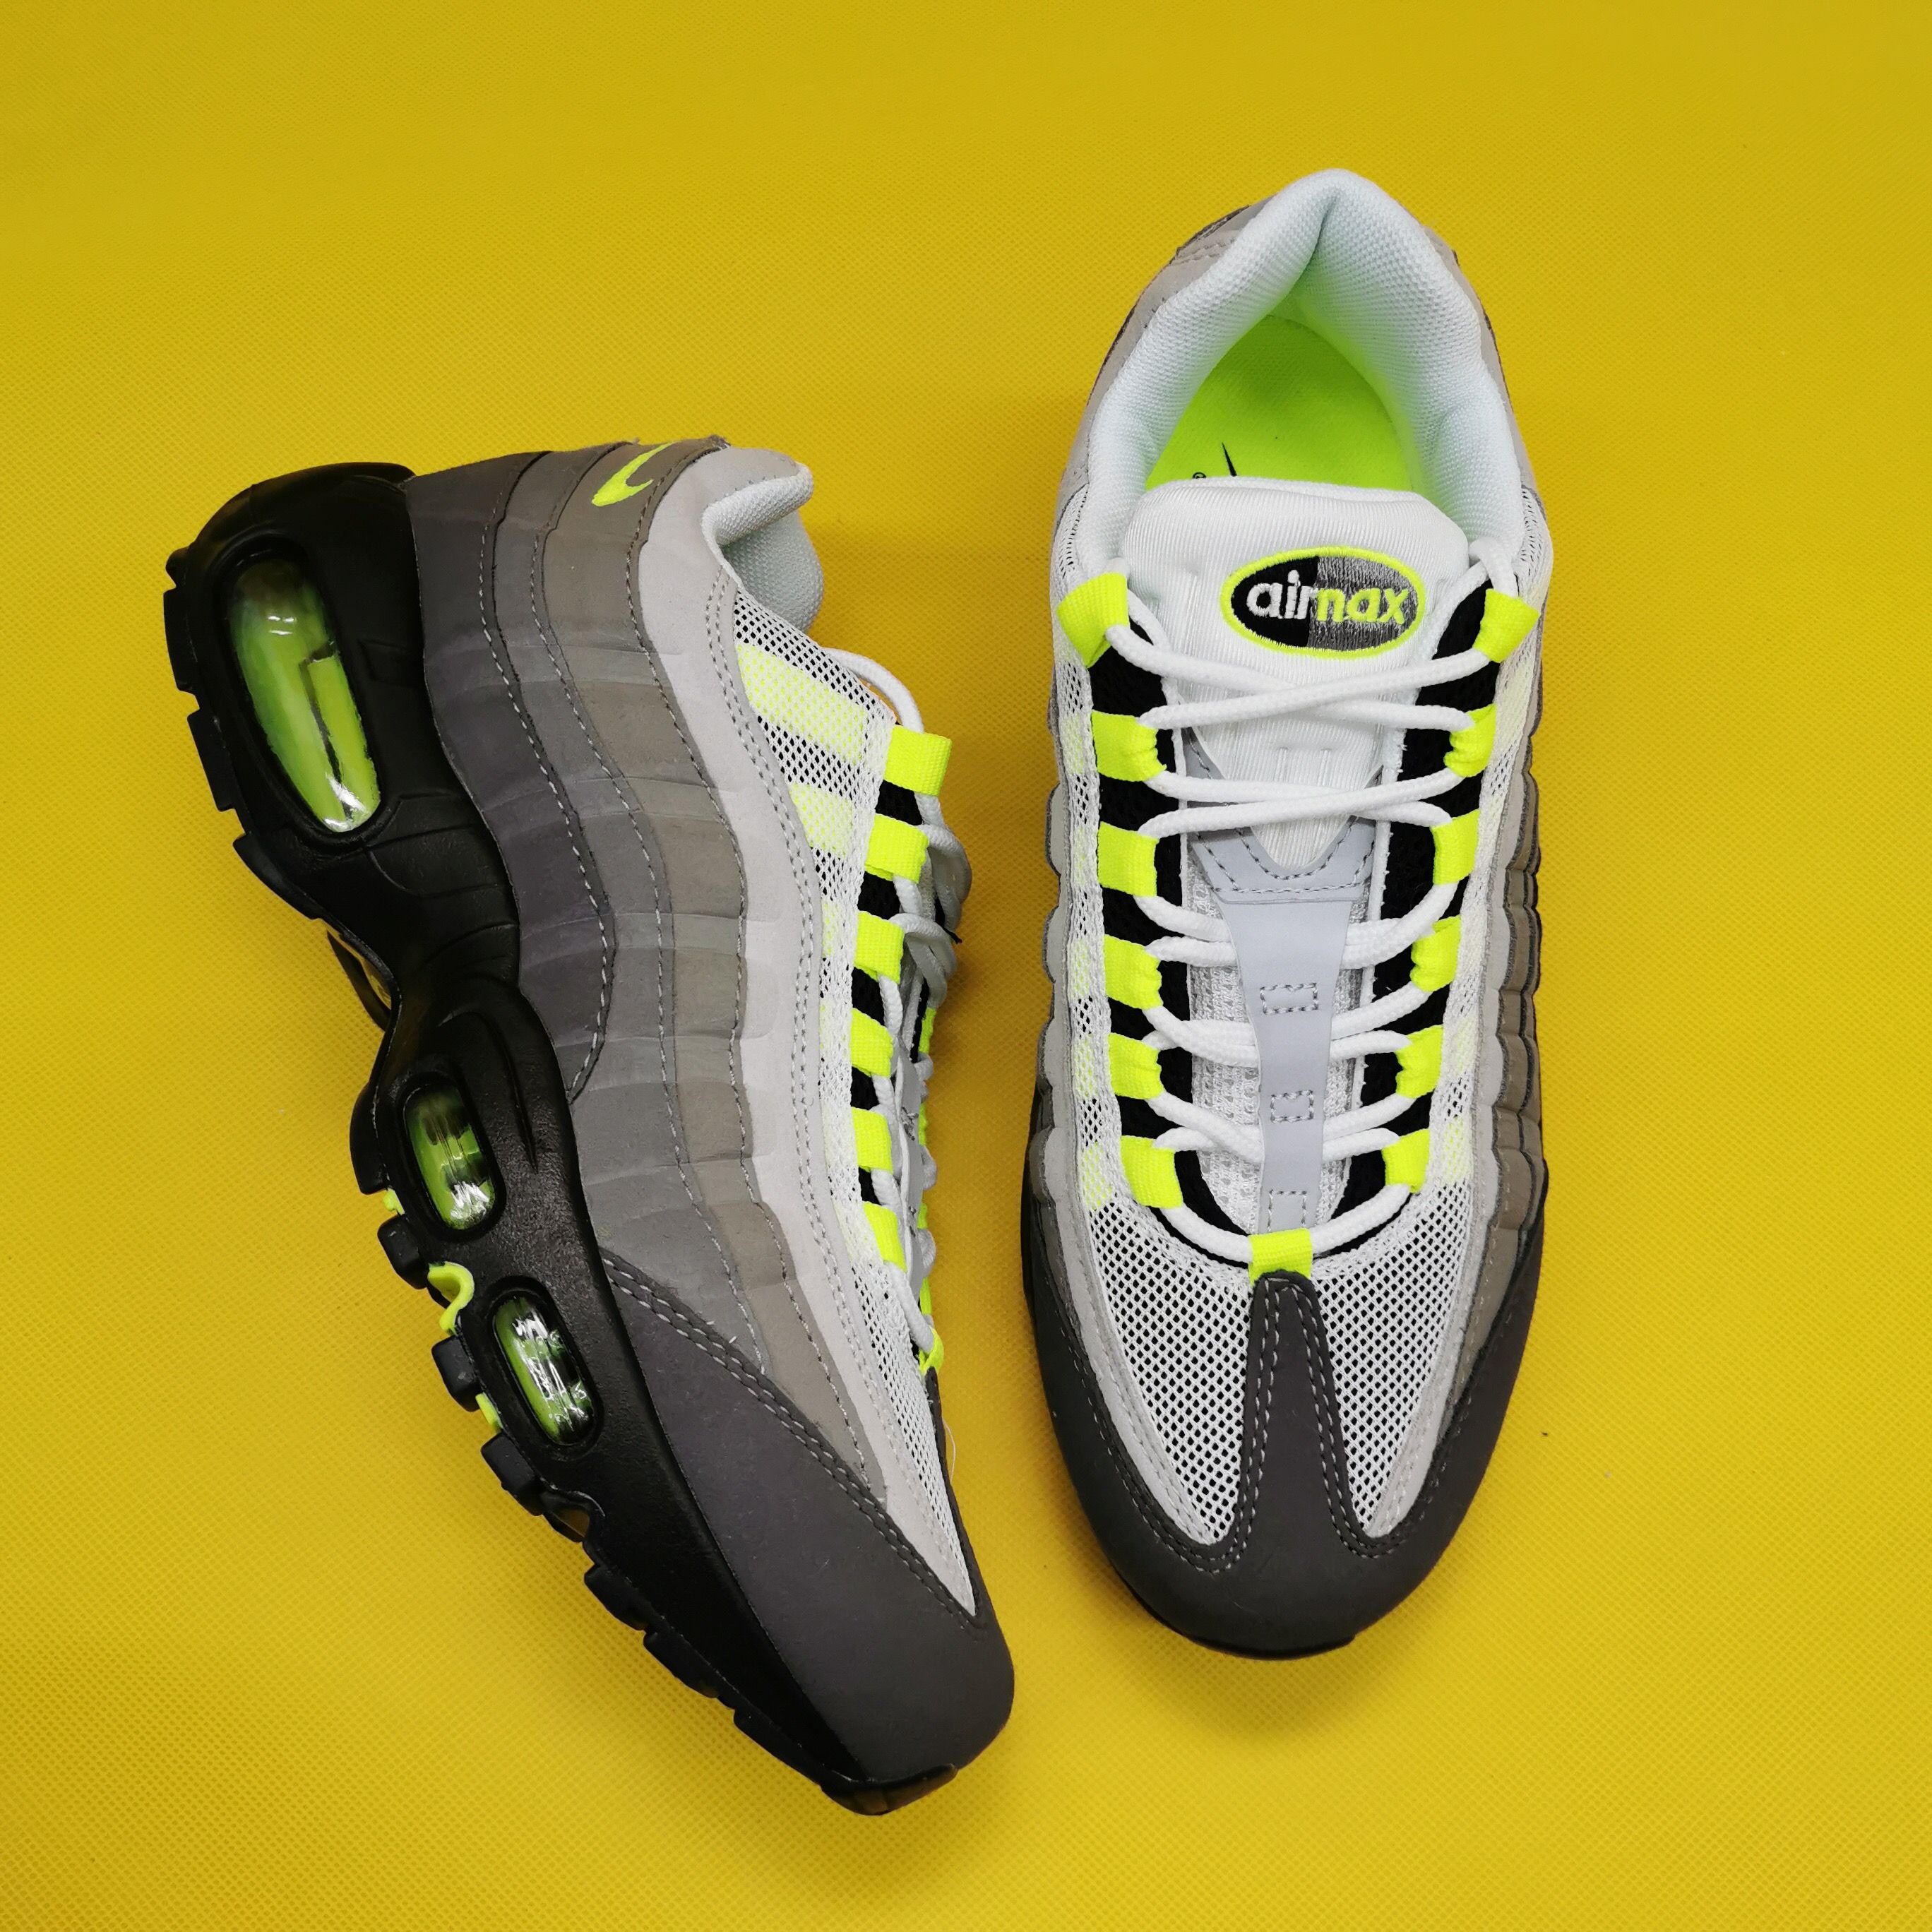 Original Womens Size Air Max 95 Og Neon 2015 With Free Shipping In 2020 Air Max 95 Air Max Nike Air Max 95